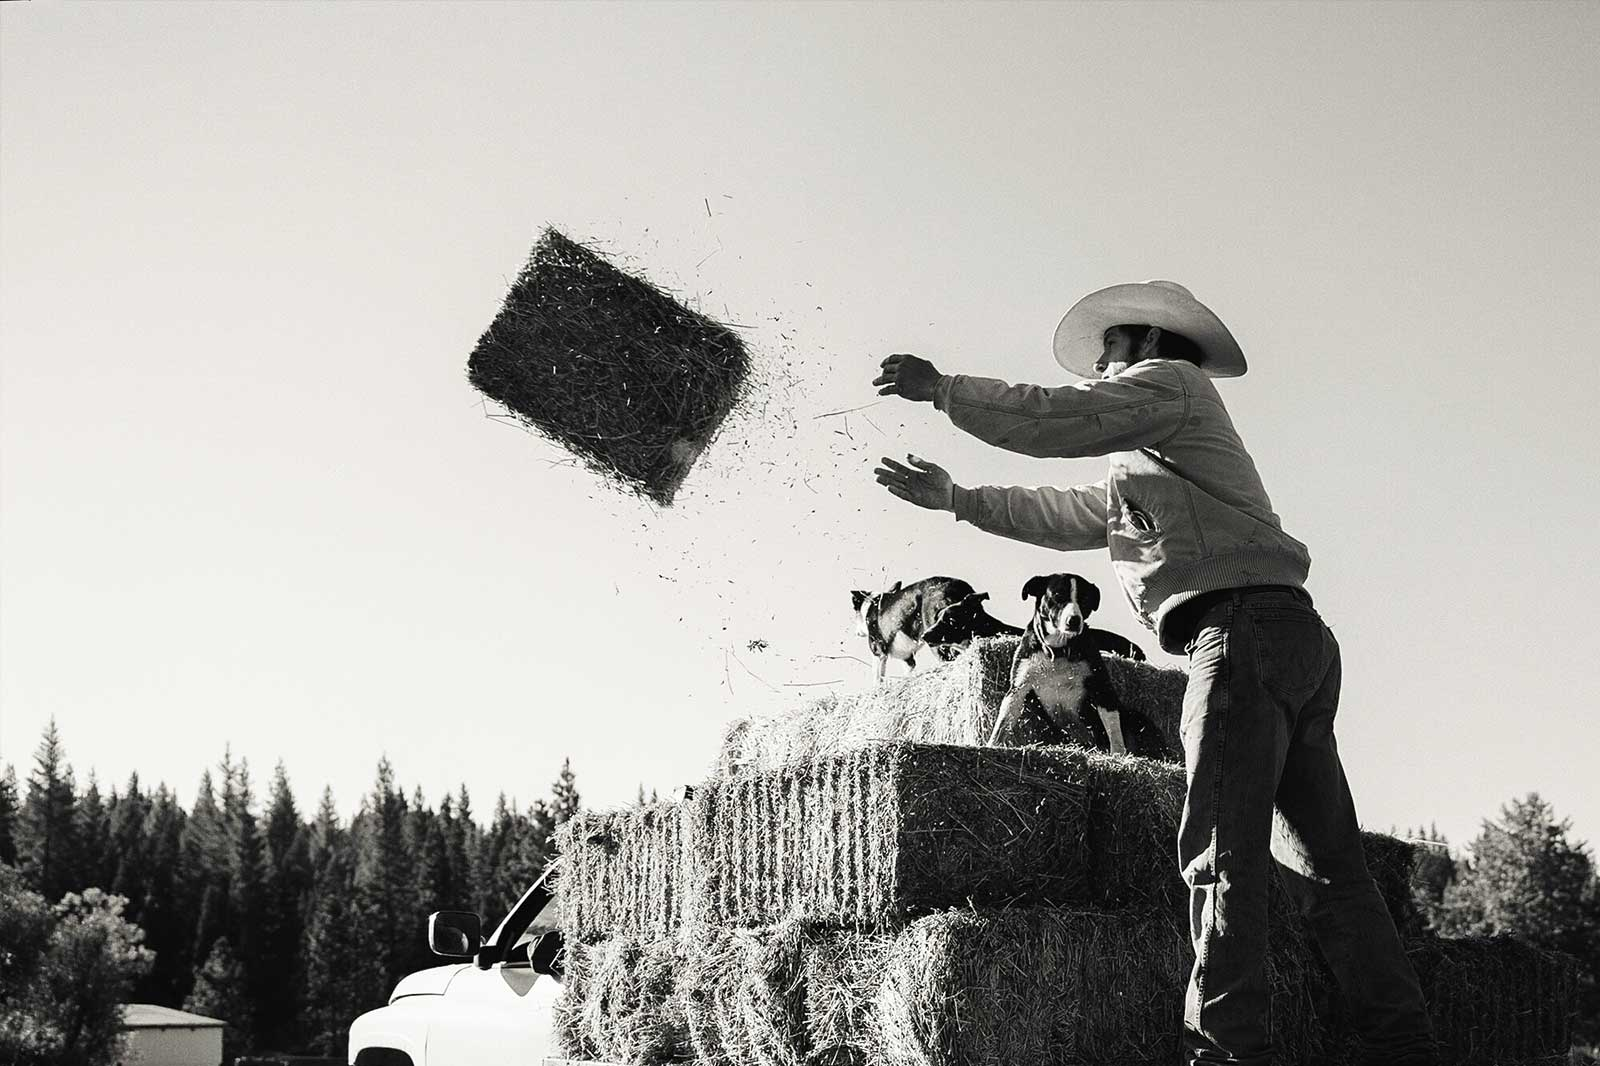 Tossing hay bales from the back of the truck.